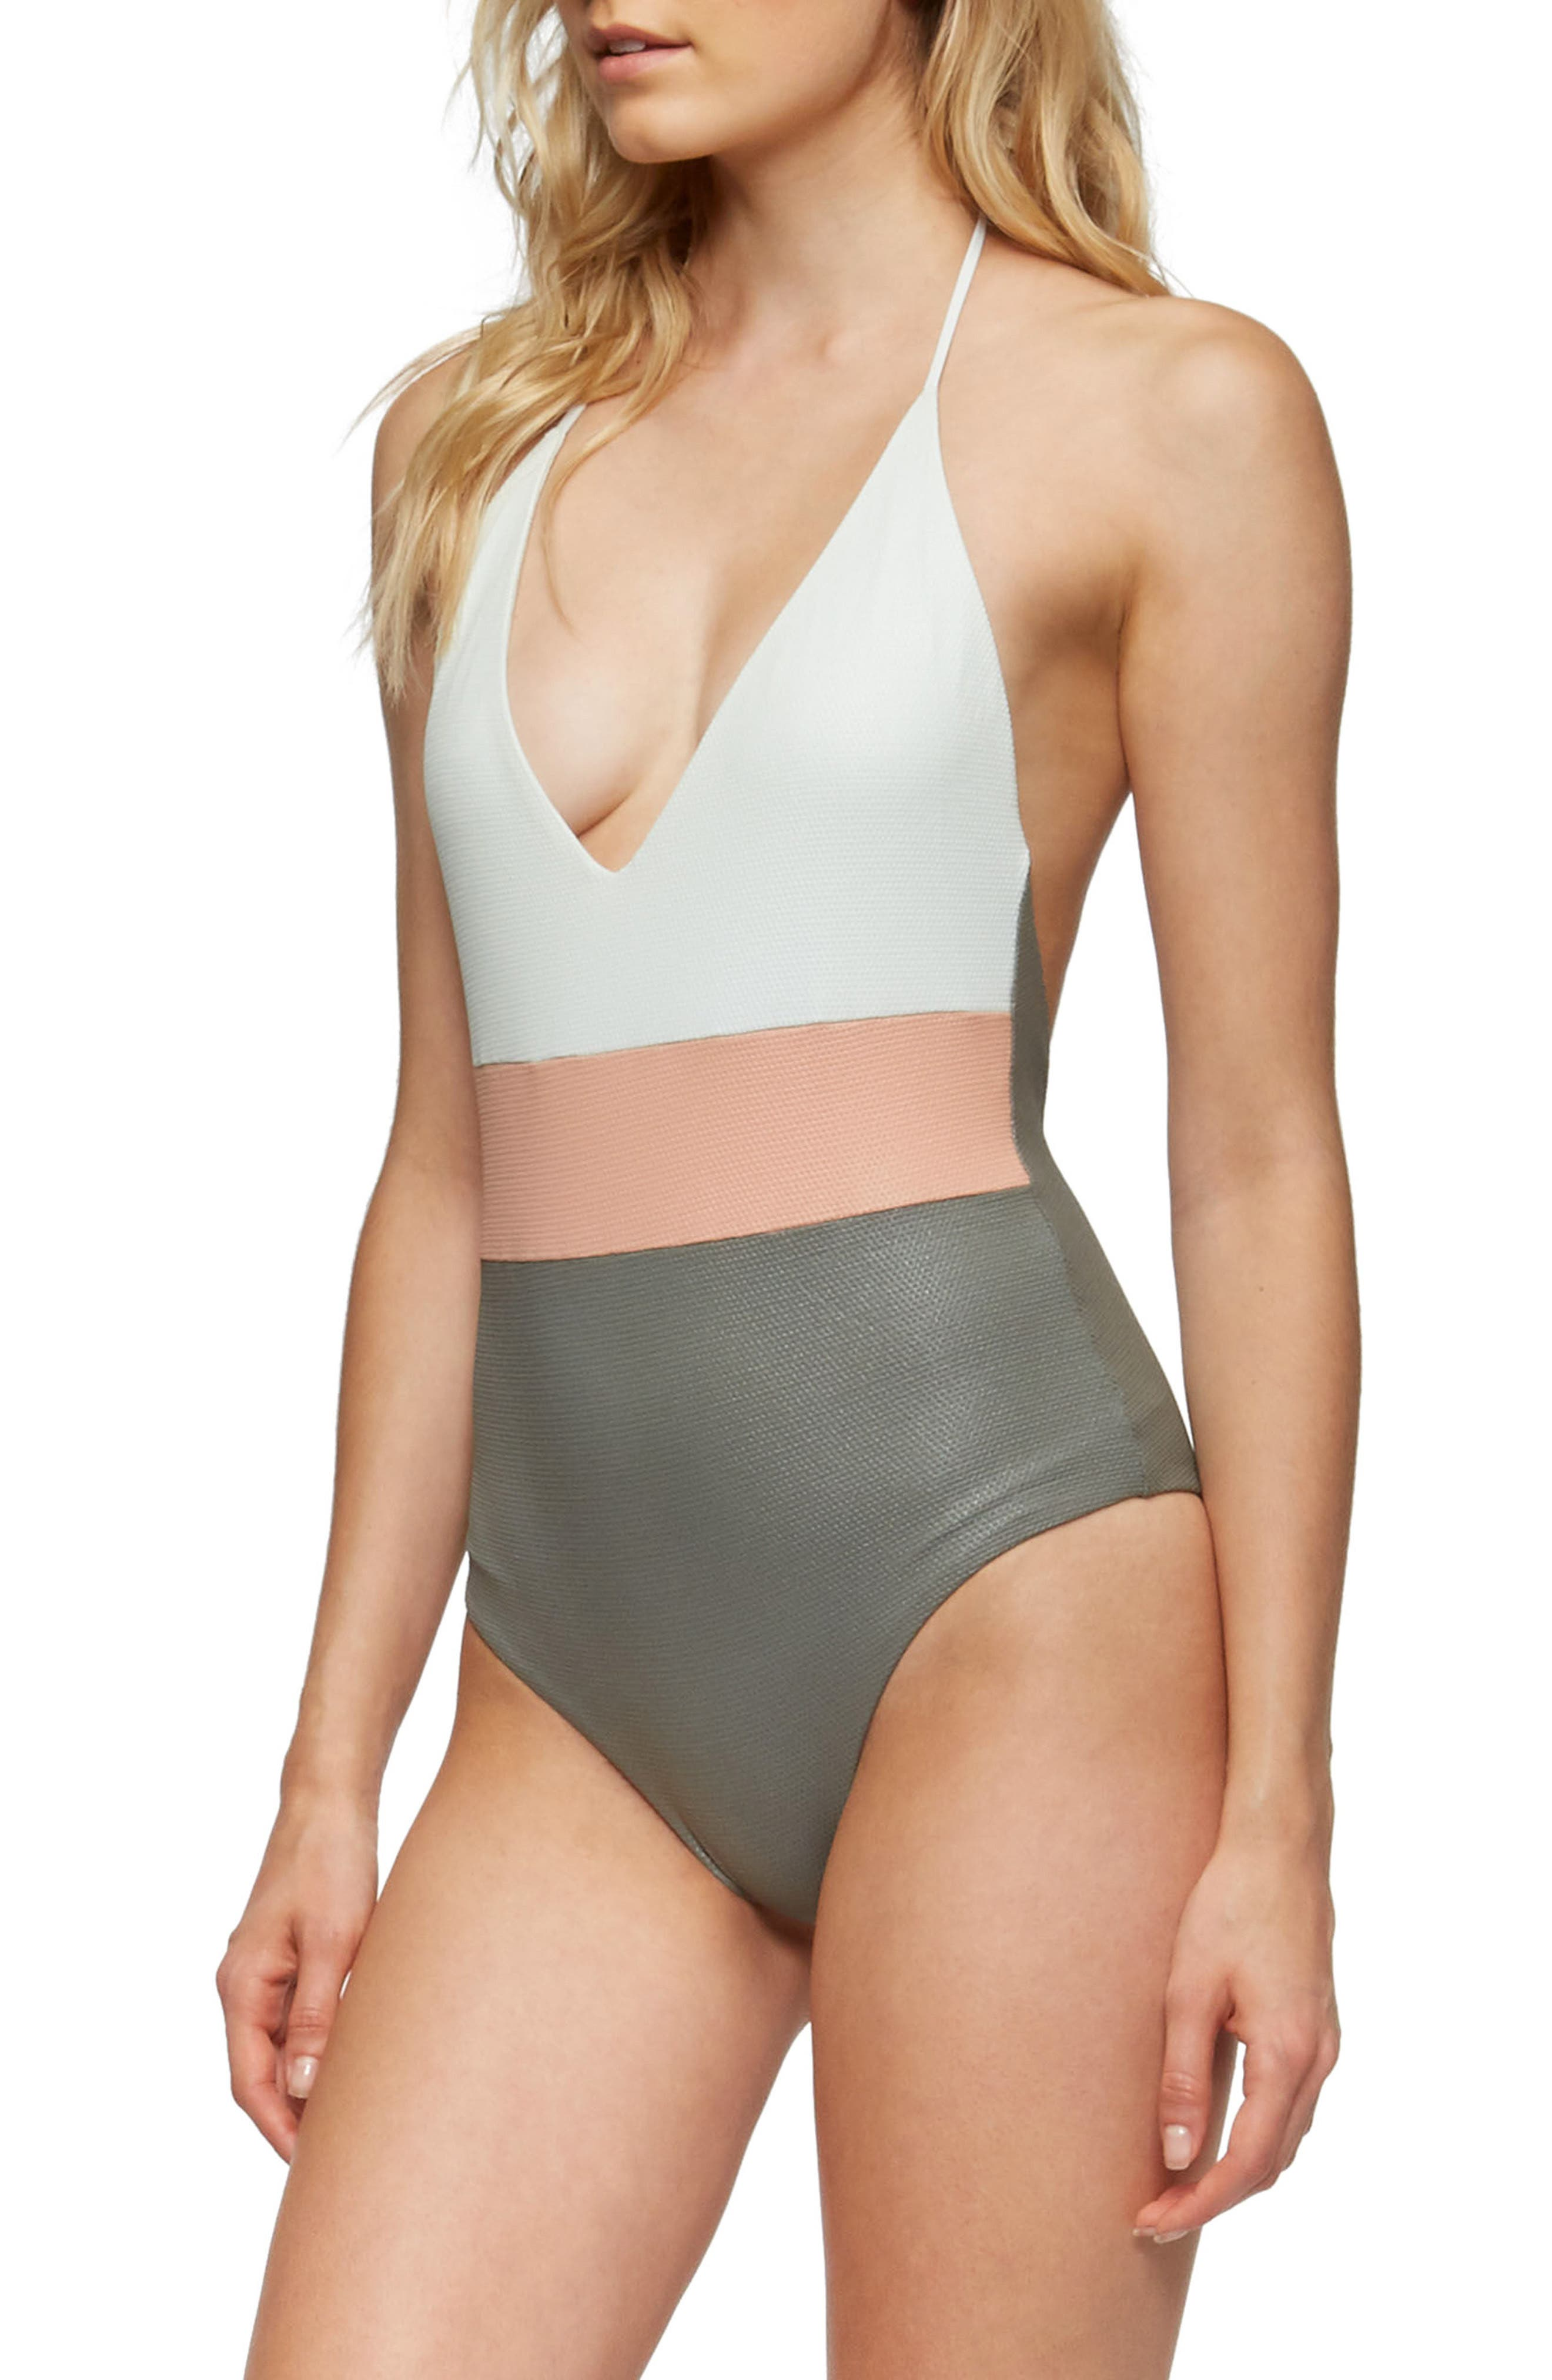 Chase Glossy One-Piece Swimsuit,                             Alternate thumbnail 3, color,                             Cove Grey